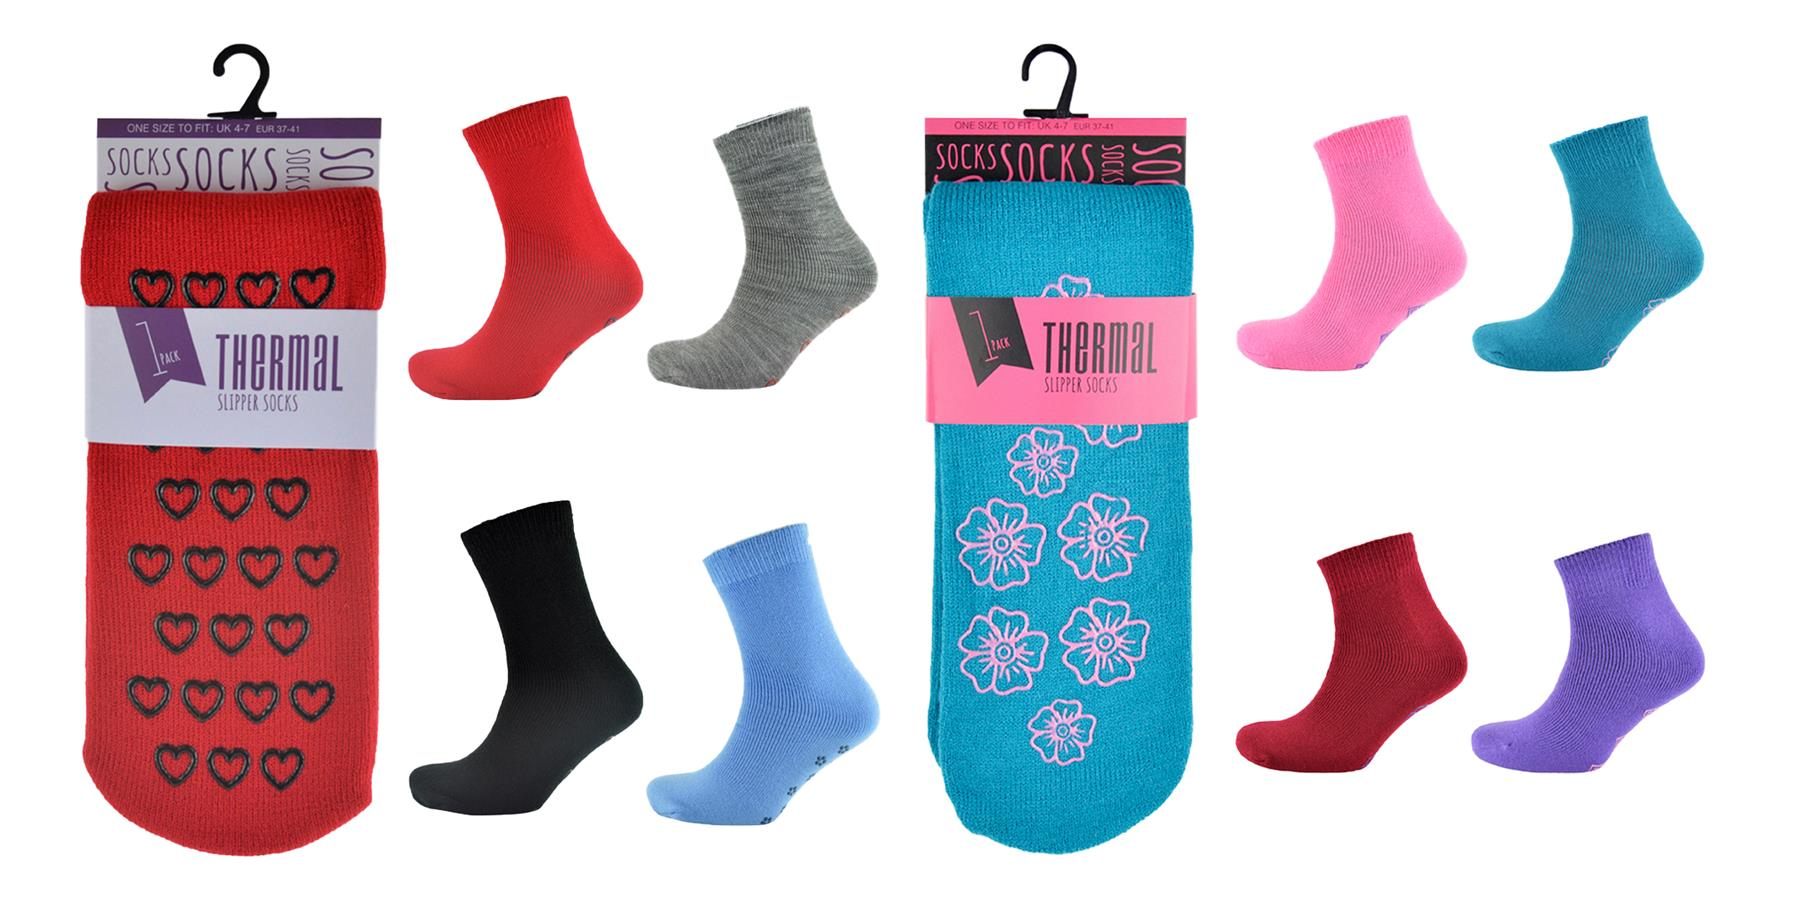 Womens Thermal Lounge Bed Slipper Socks With Rubber Grips on Sole 4 Pairs